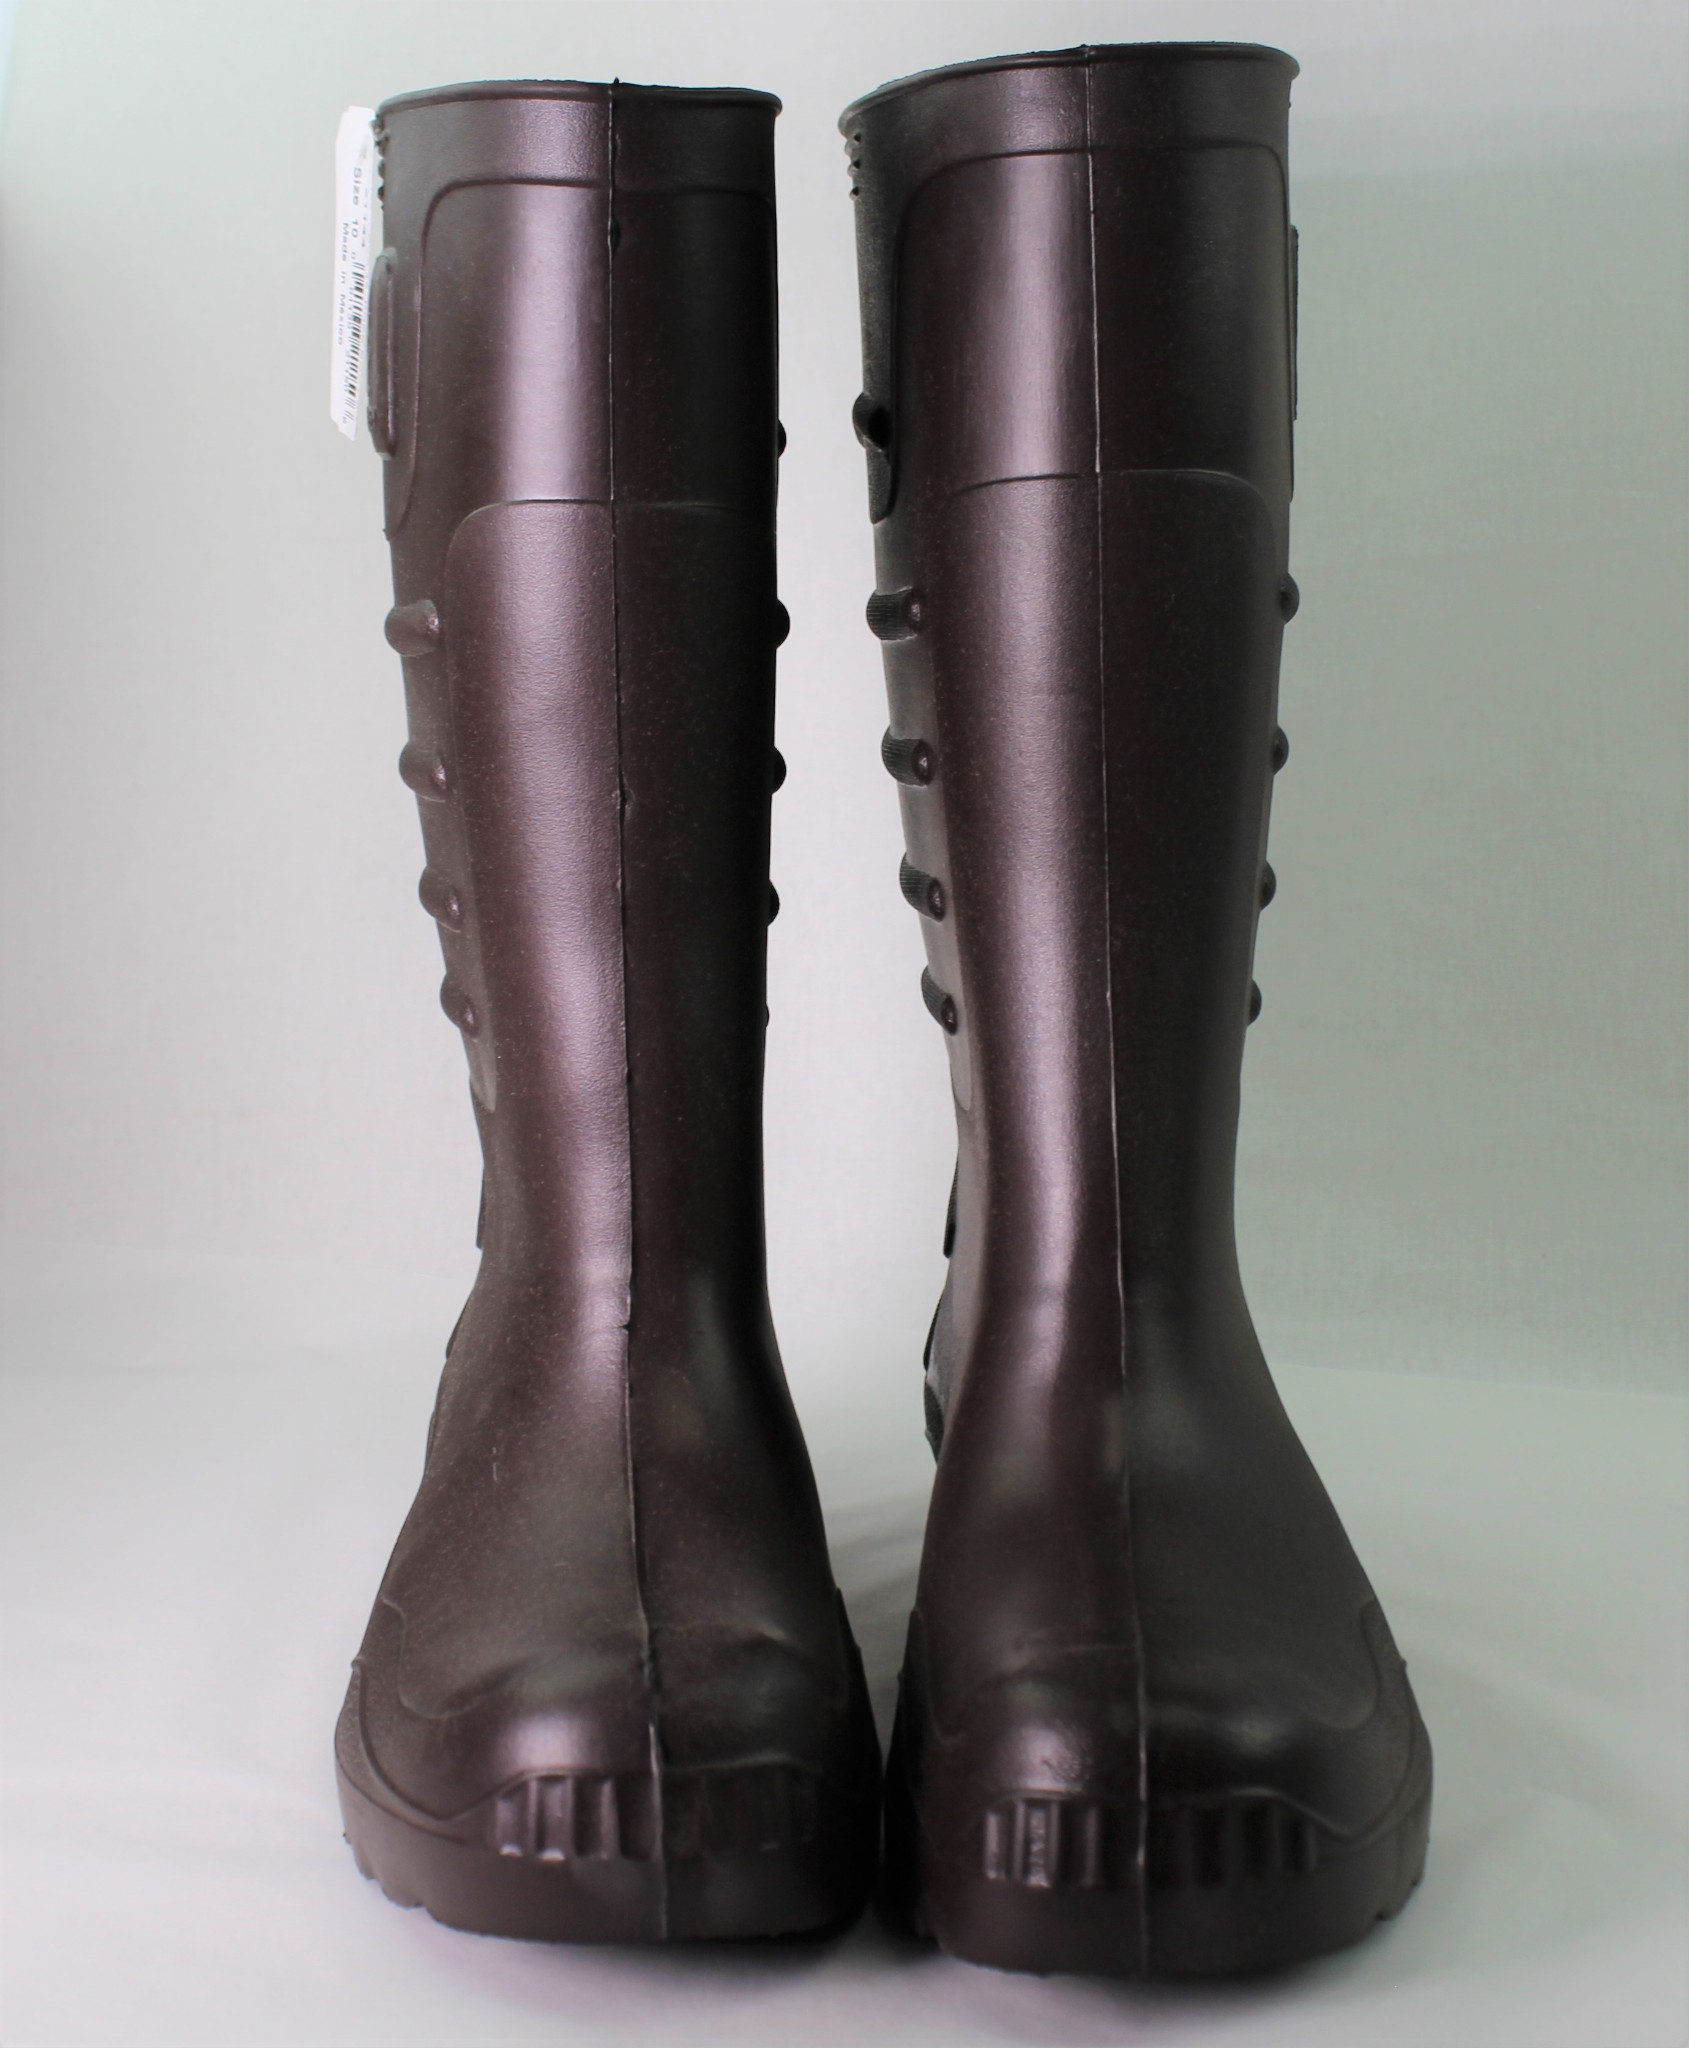 in stock c7124 08cb2 Details about Tingley Ultra Lightweight Boots Eva Knee Boot Size 10 Brown  Style #21144